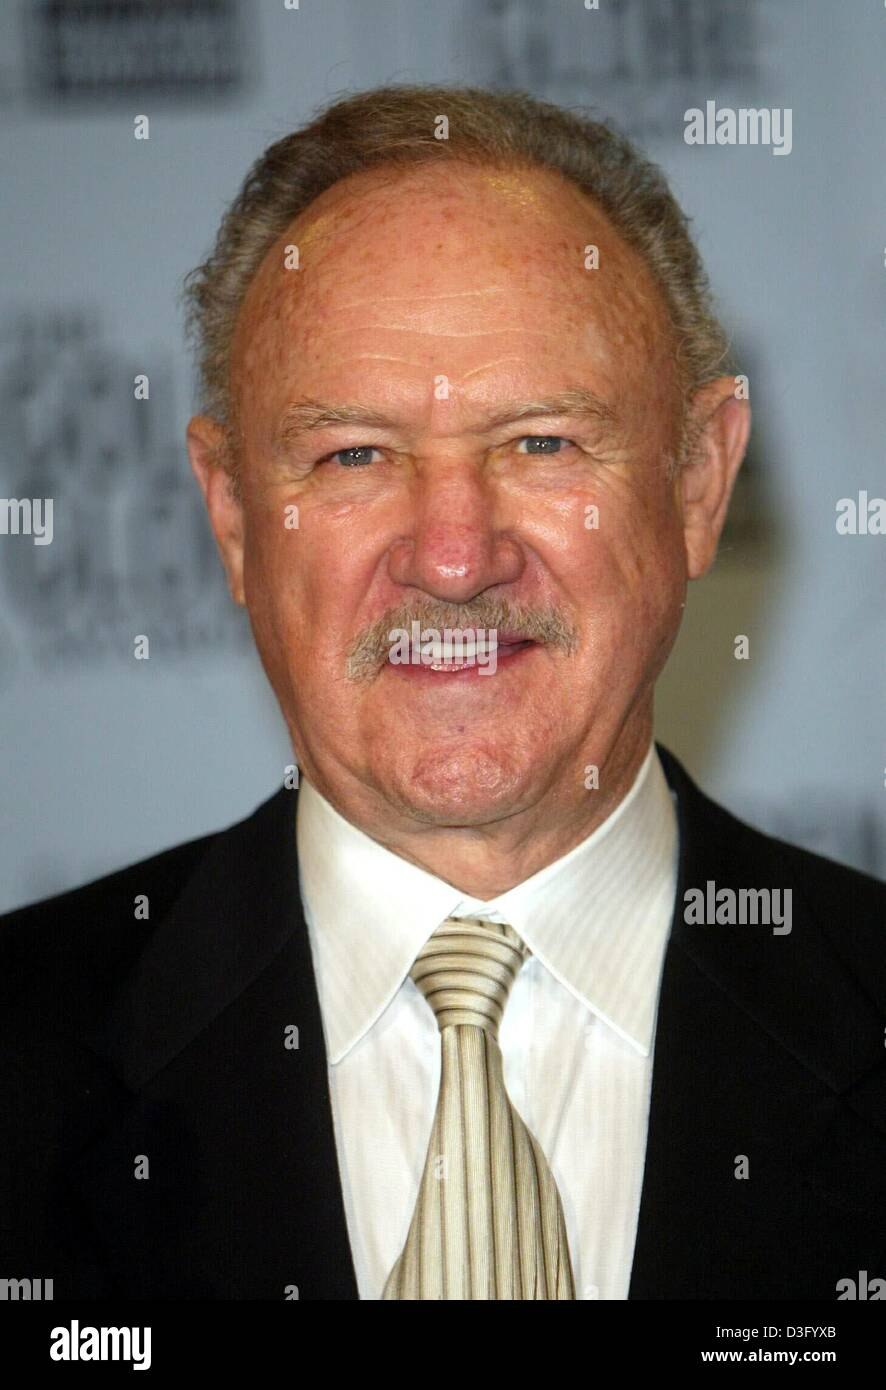 (dpa) - US actor Gene Hackman ('No Way Out', 'Unforgiven') smiles after the 60th Golden Globe Awards - Stock Image